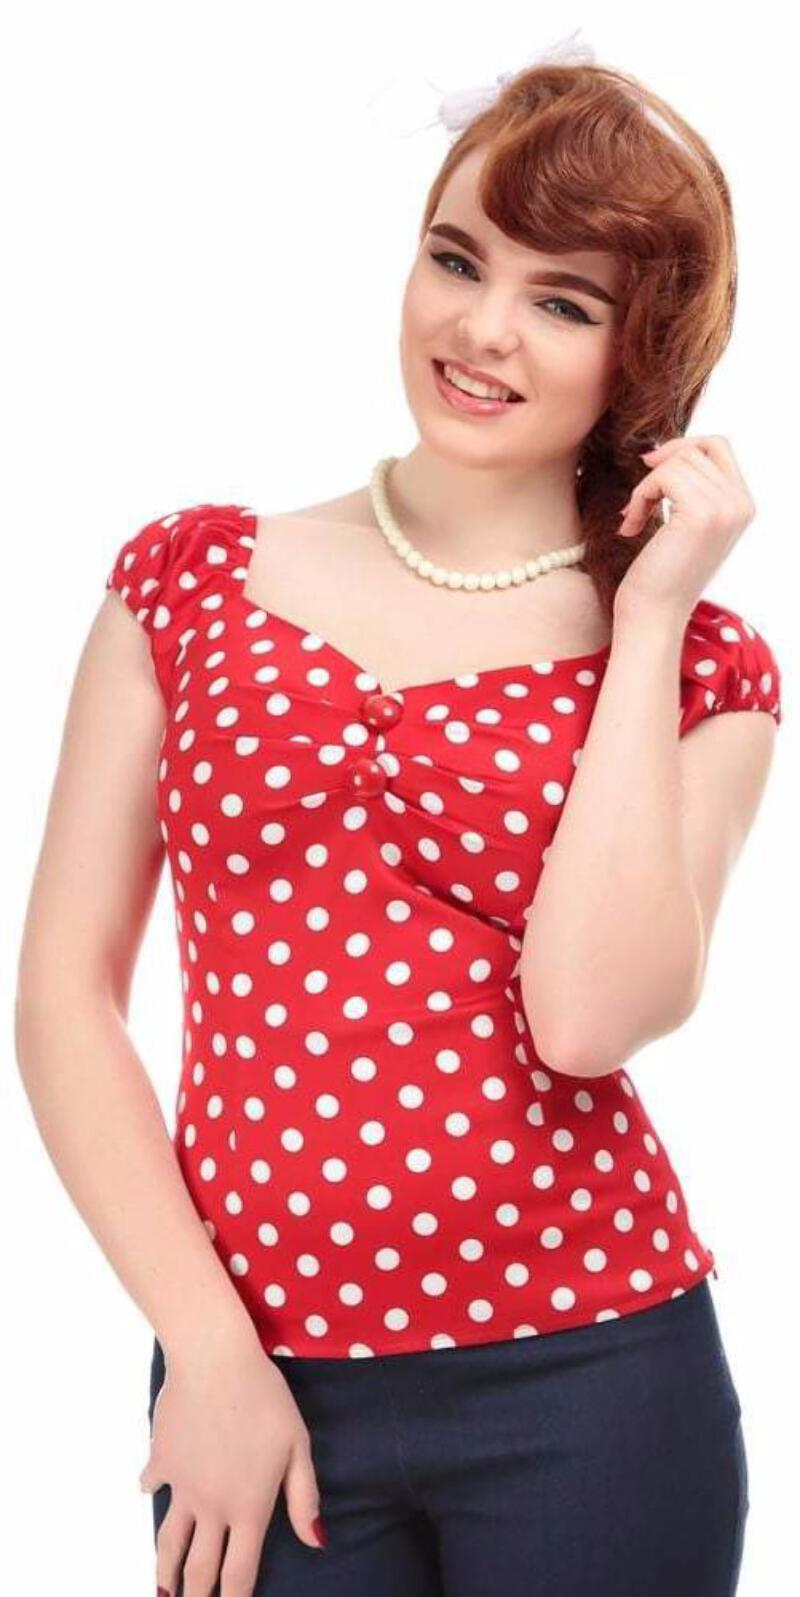 f70814eb8c8aa Collectif Dolores 50s Vintage Style Red and White Polka Dot Gypsy ...